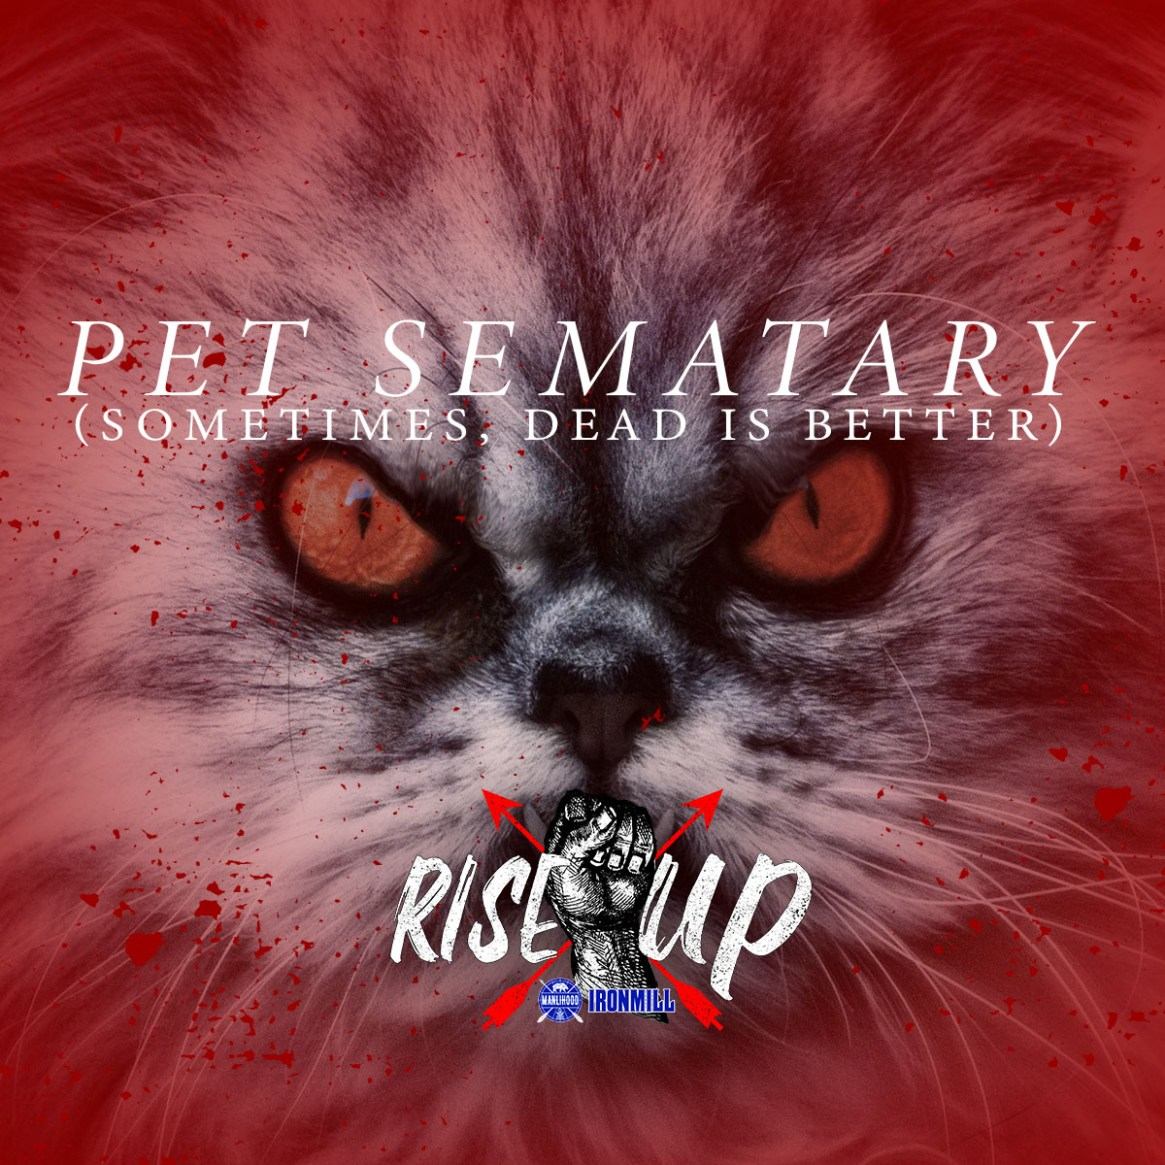 Pet Sematary - Rise X Up - Josh Hatcher